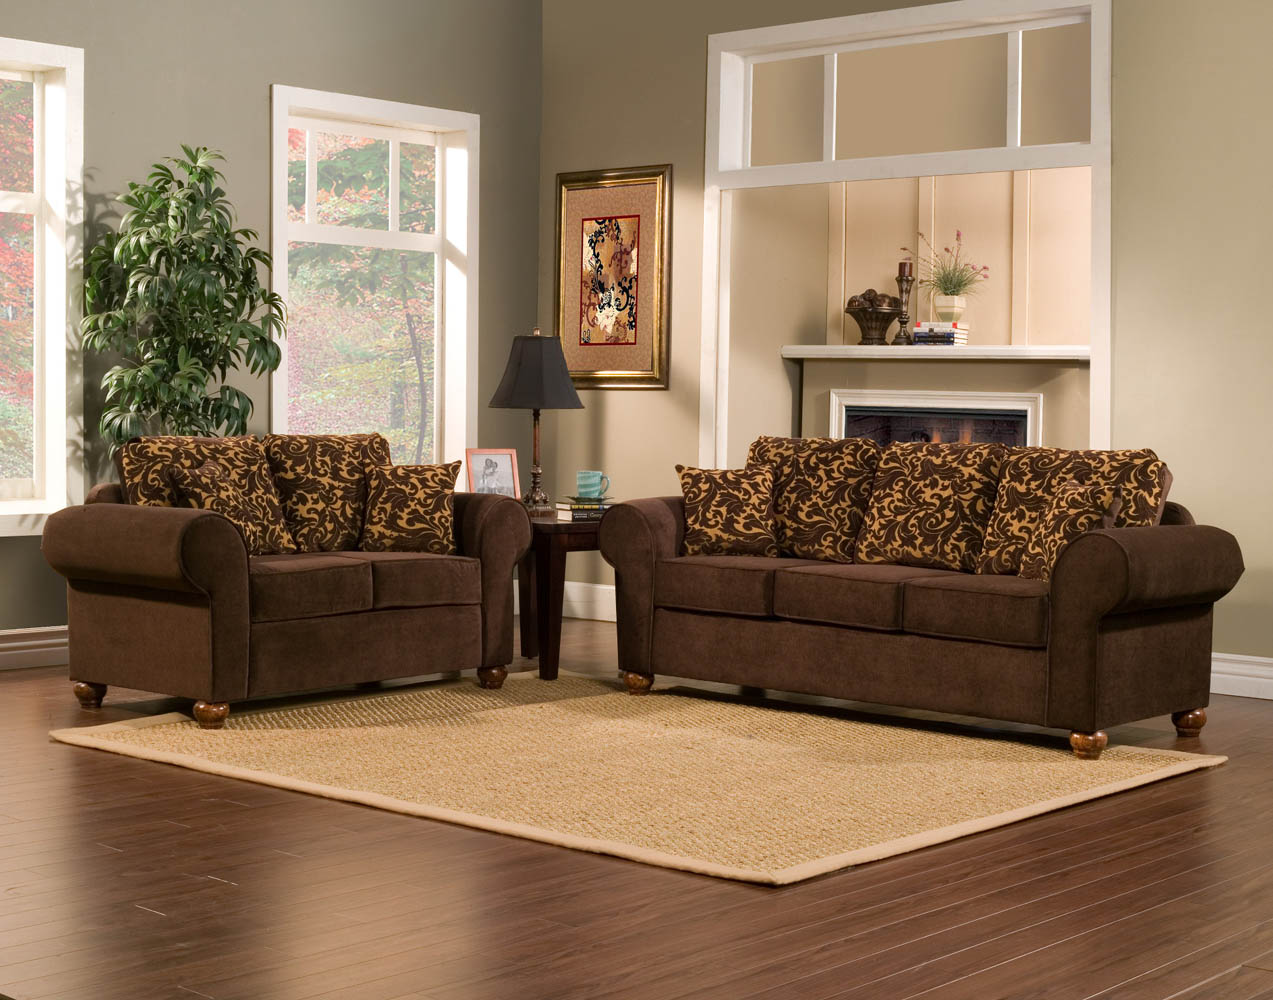 Brown Sofa Sets. Prev Brown Sofa Sets Easy2getfurniture.com